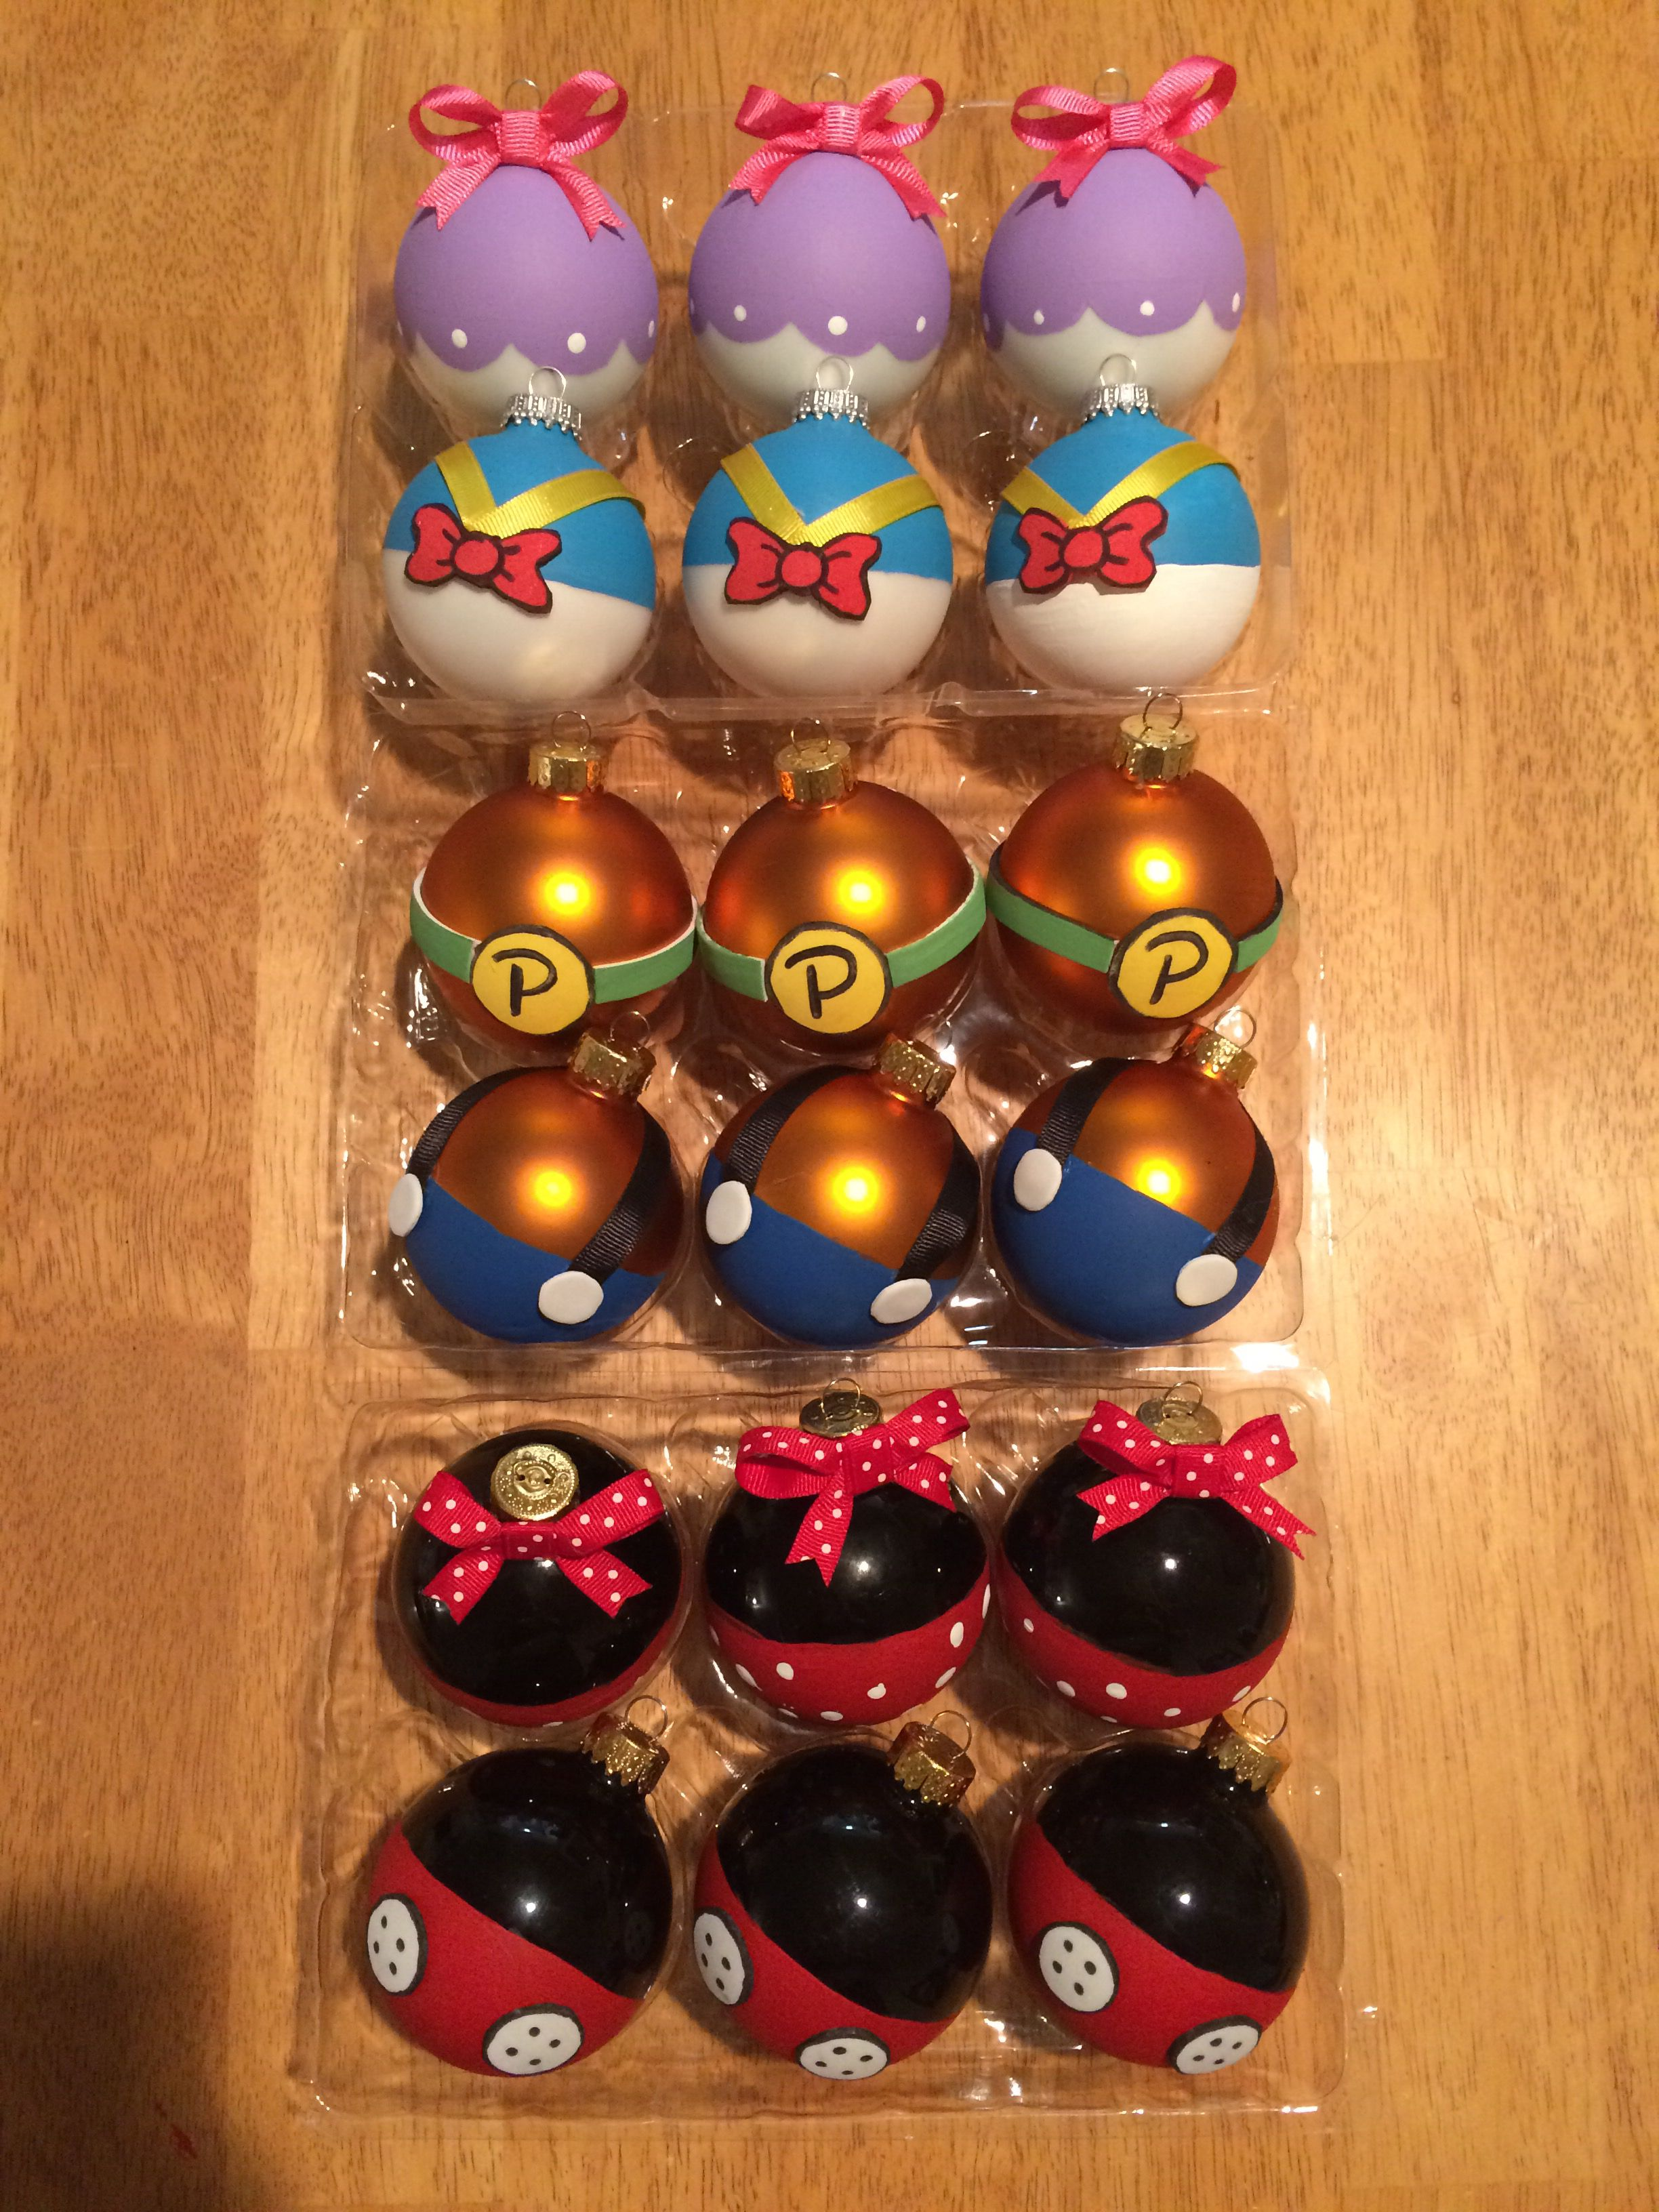 Diy disney character ornaments merry christmas for Do it yourself christmas ornaments